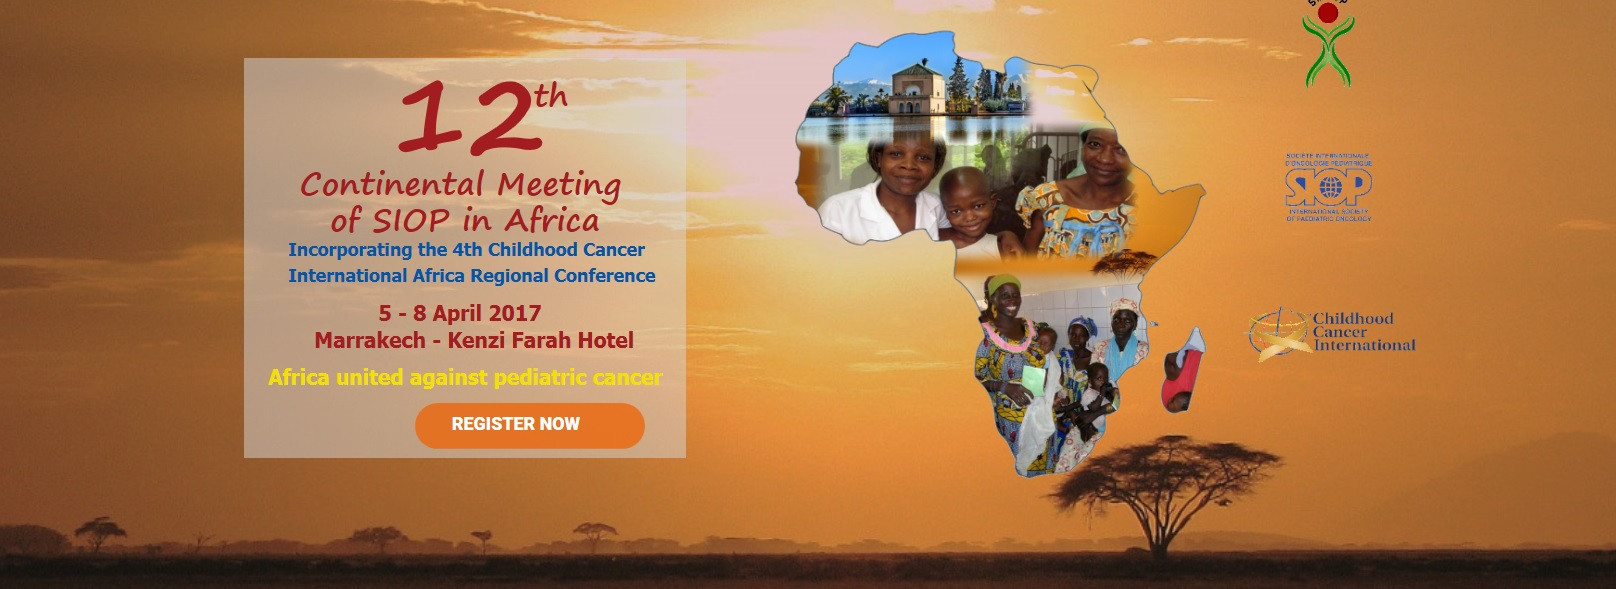 SIOP 2017 Africa meeting banner